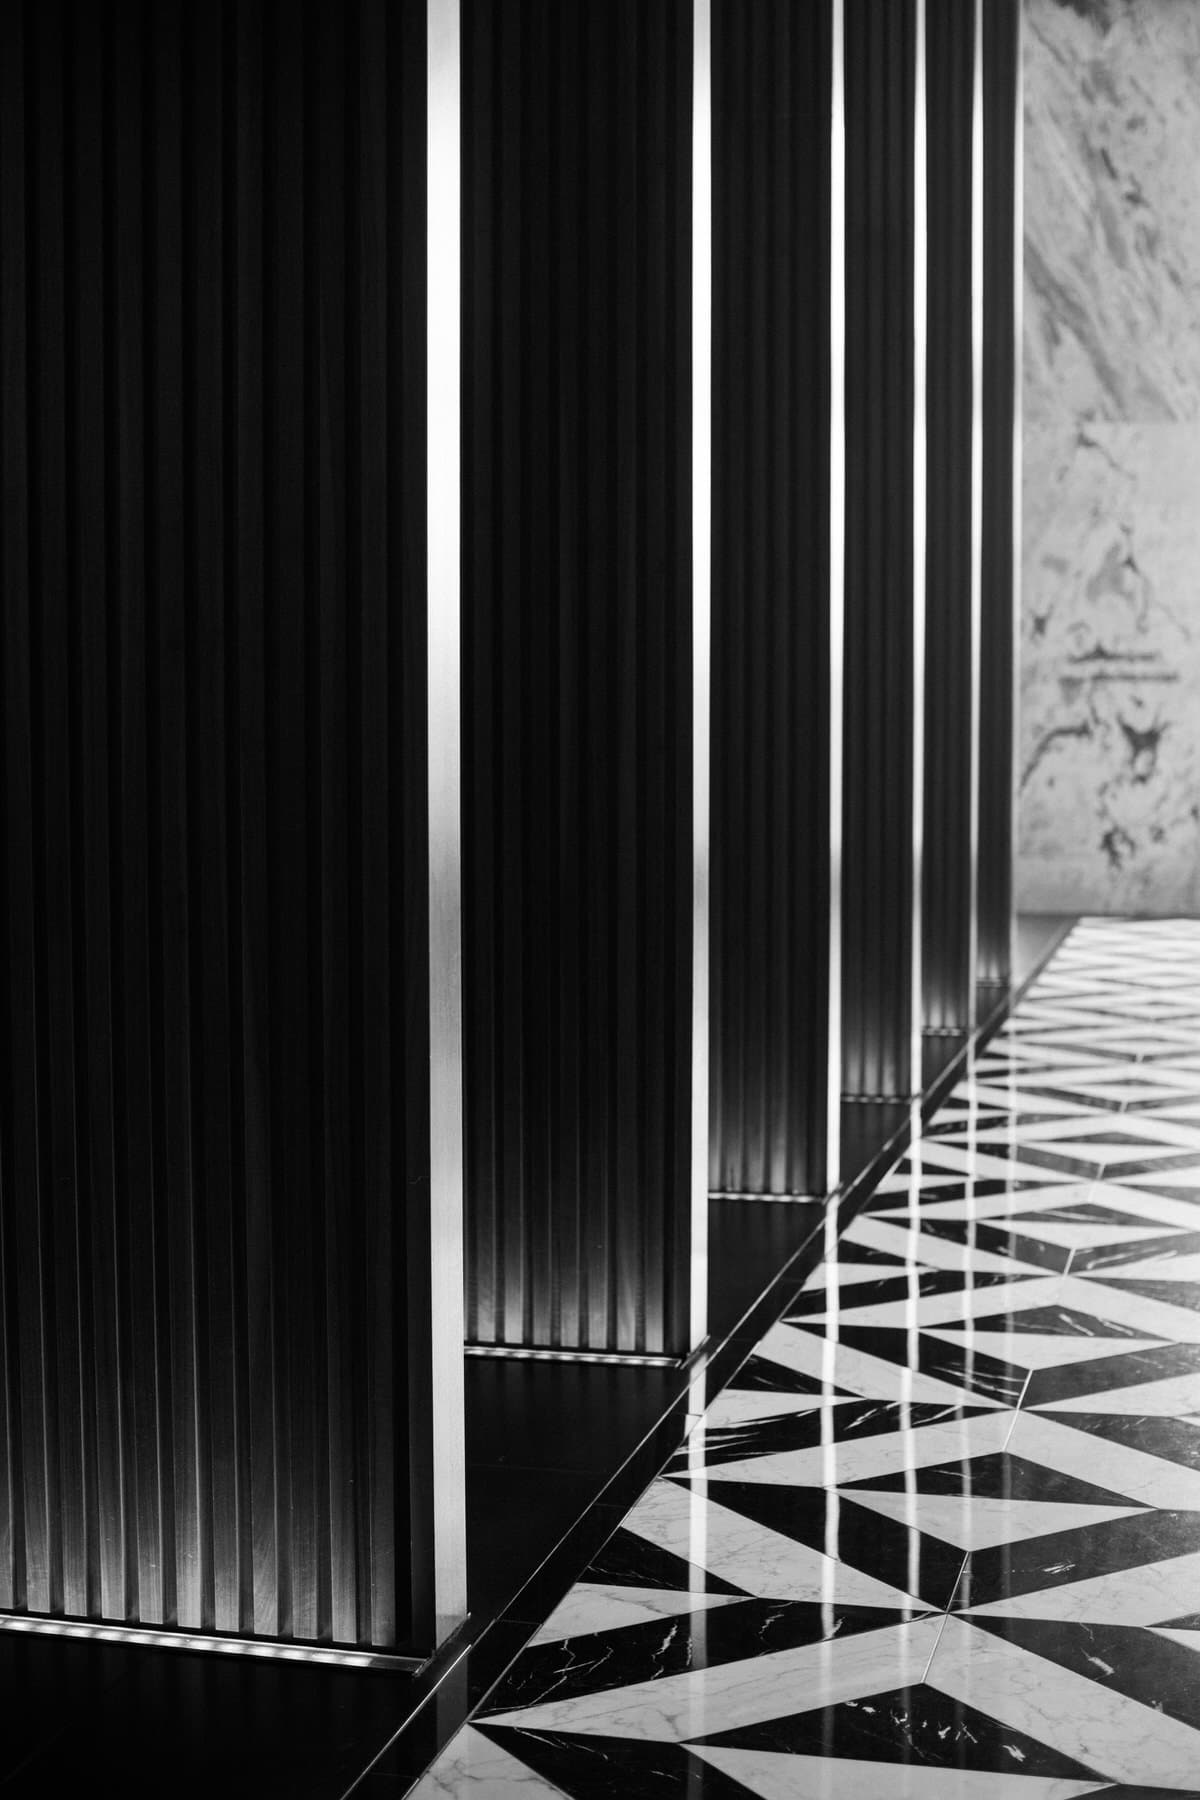 Ritz-Carlton-Chicago-Illinois-black-and-white-fine-art-photography-by-Studio-L-photographer-Laura-Schneider-_5442